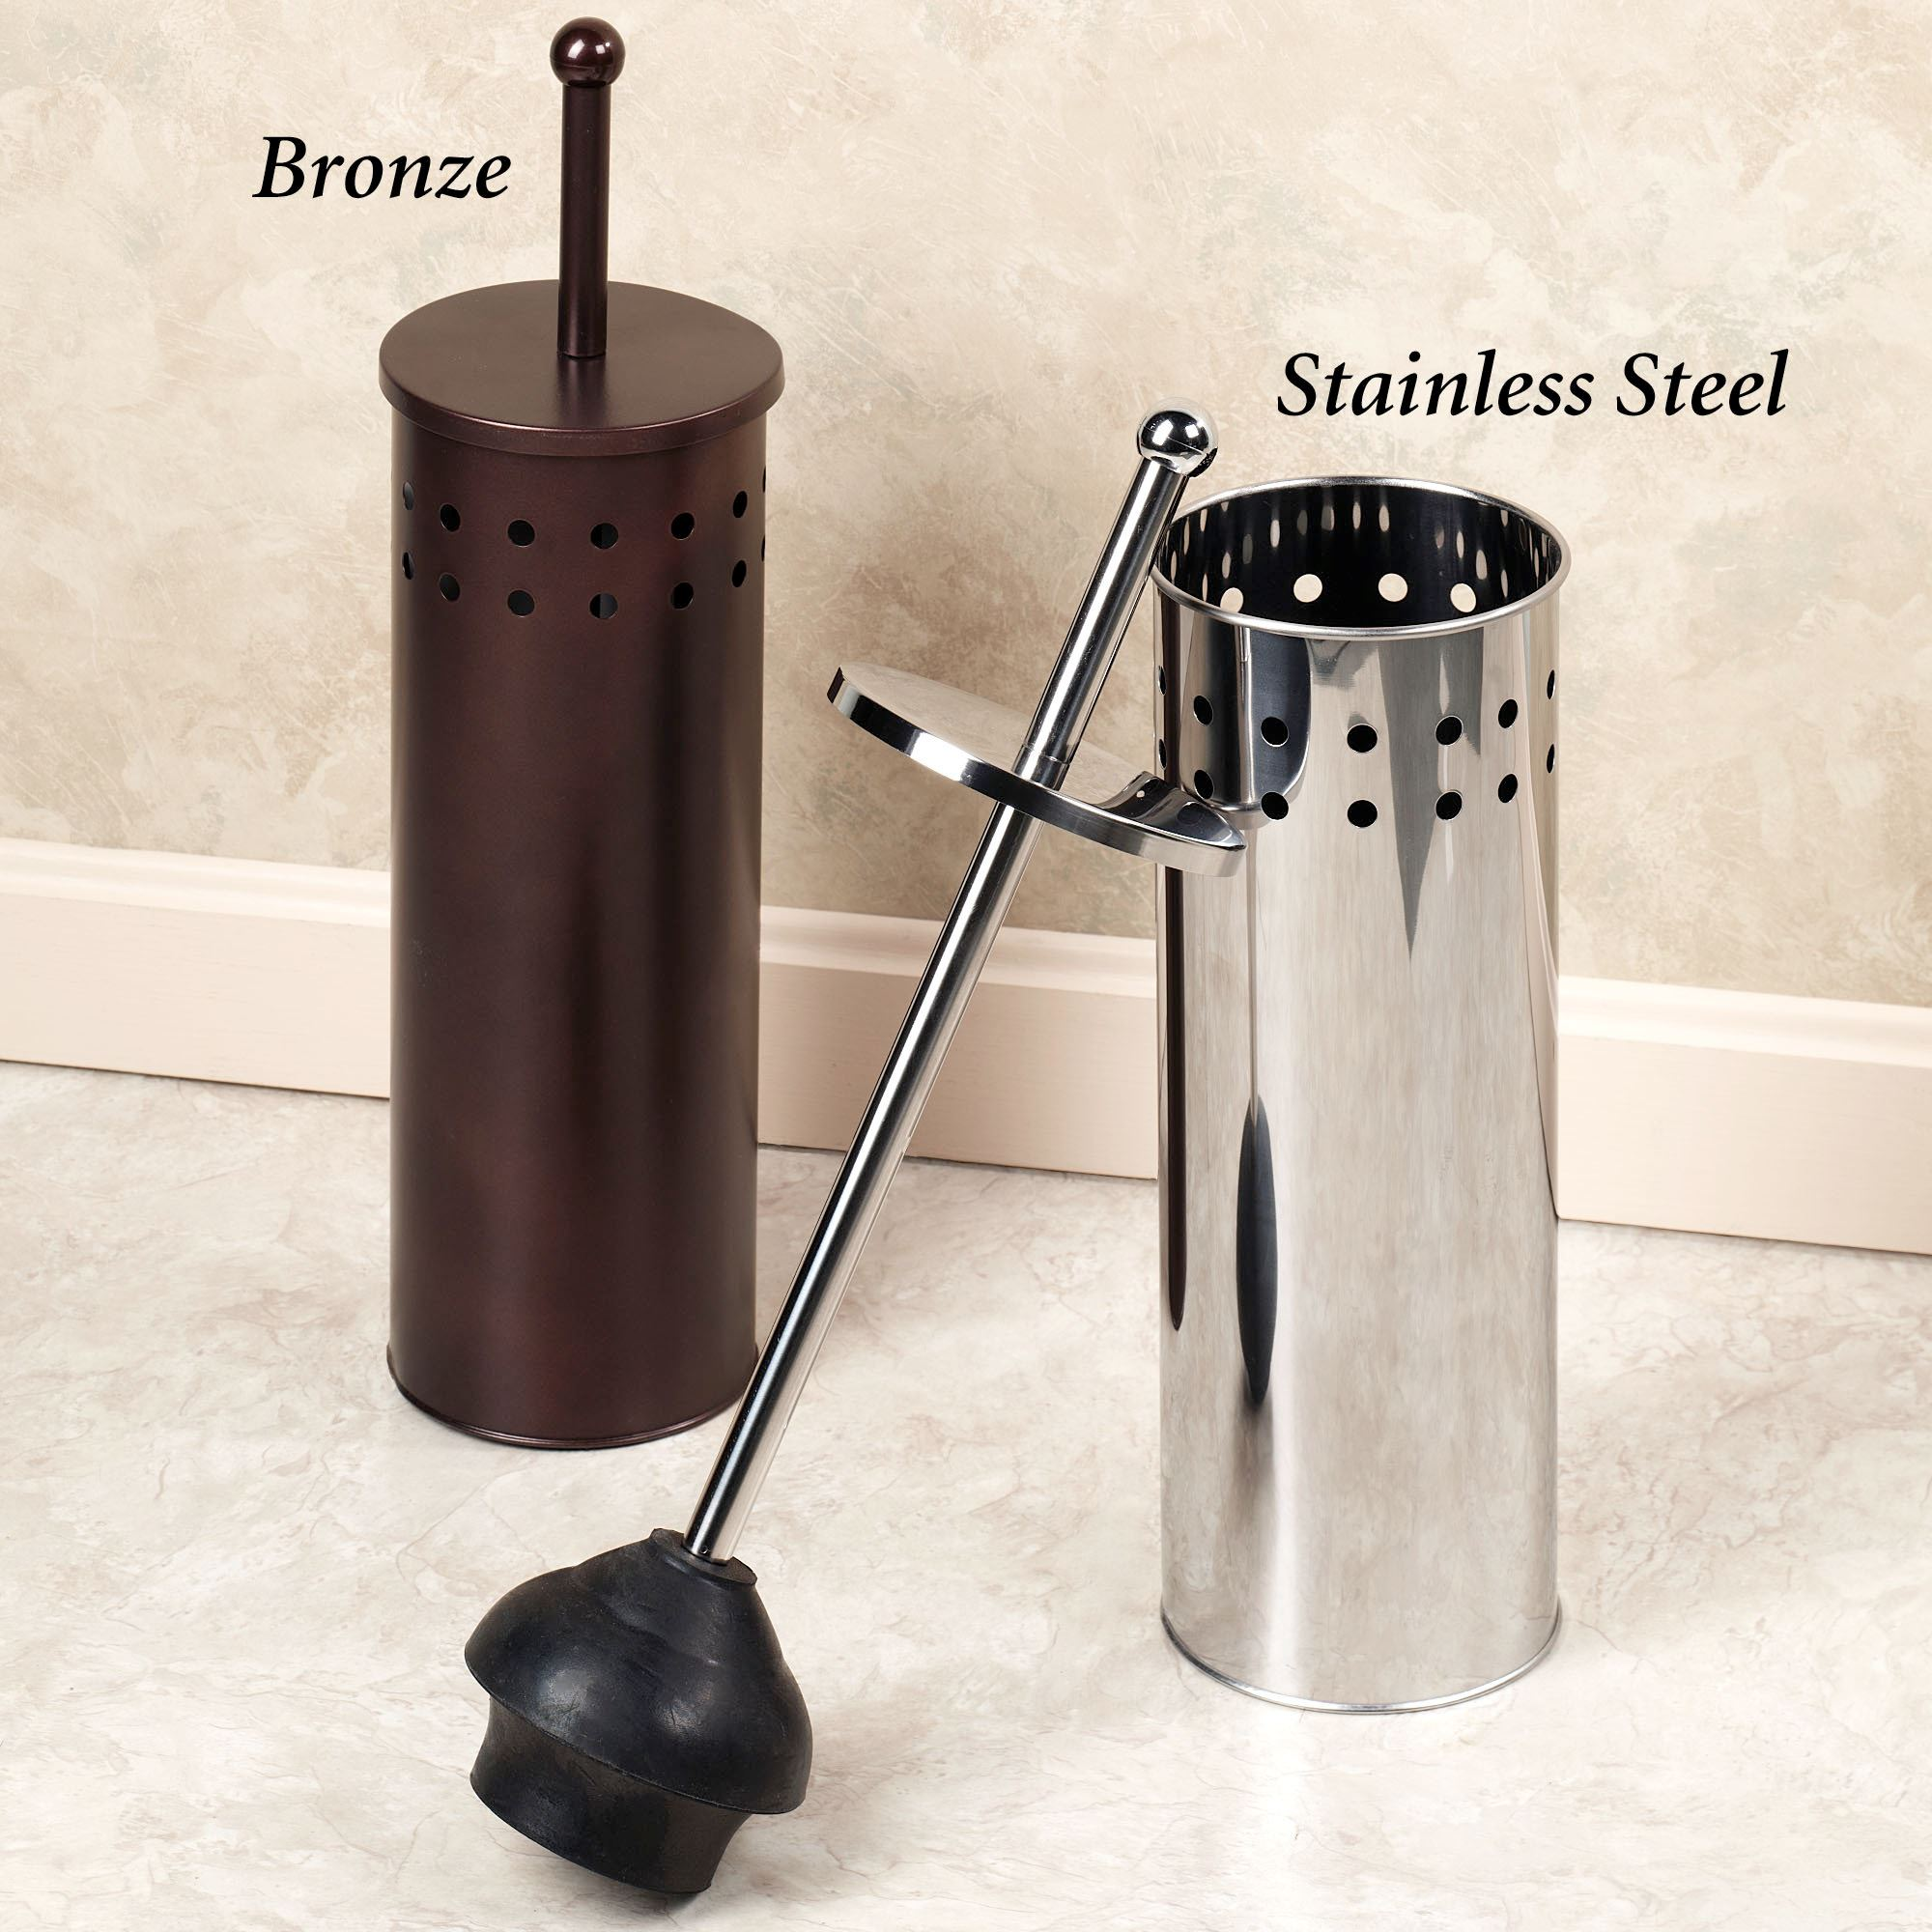 Toilet Plunger And Lidded Holder